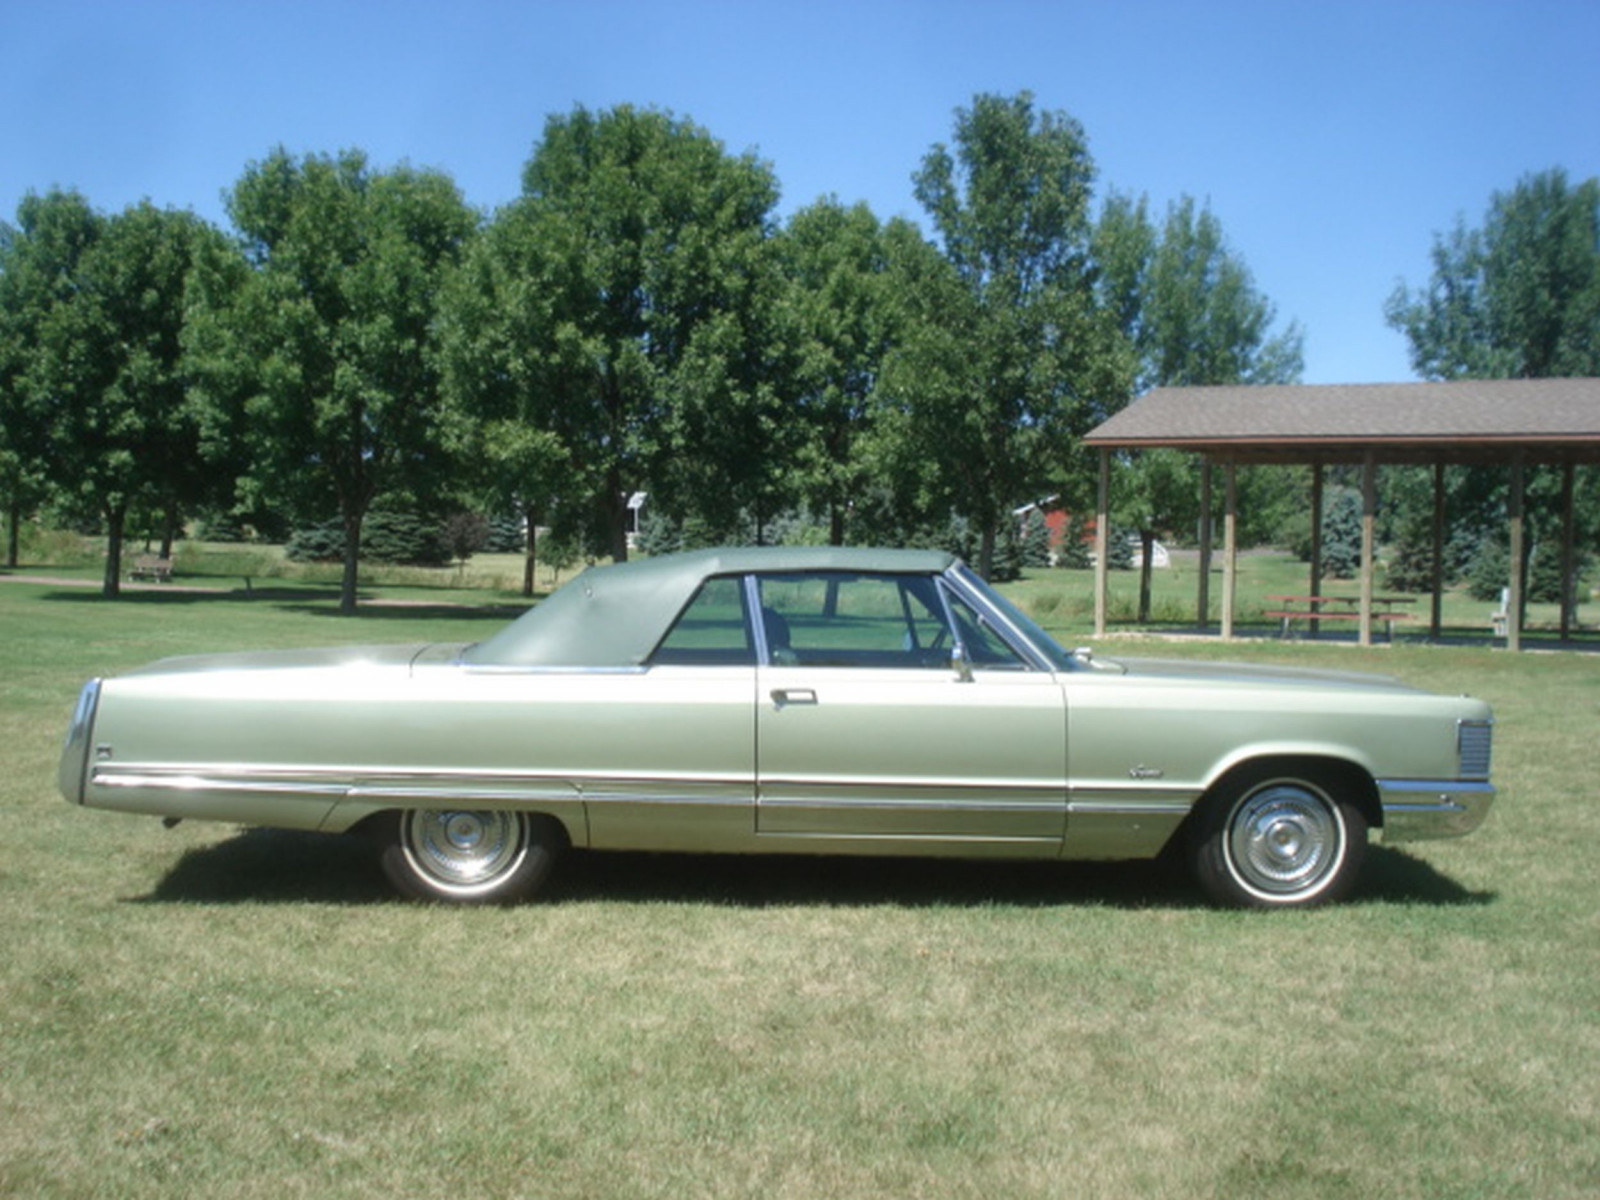 1968 Chrysler Imperial Crown Convertible - Image 12